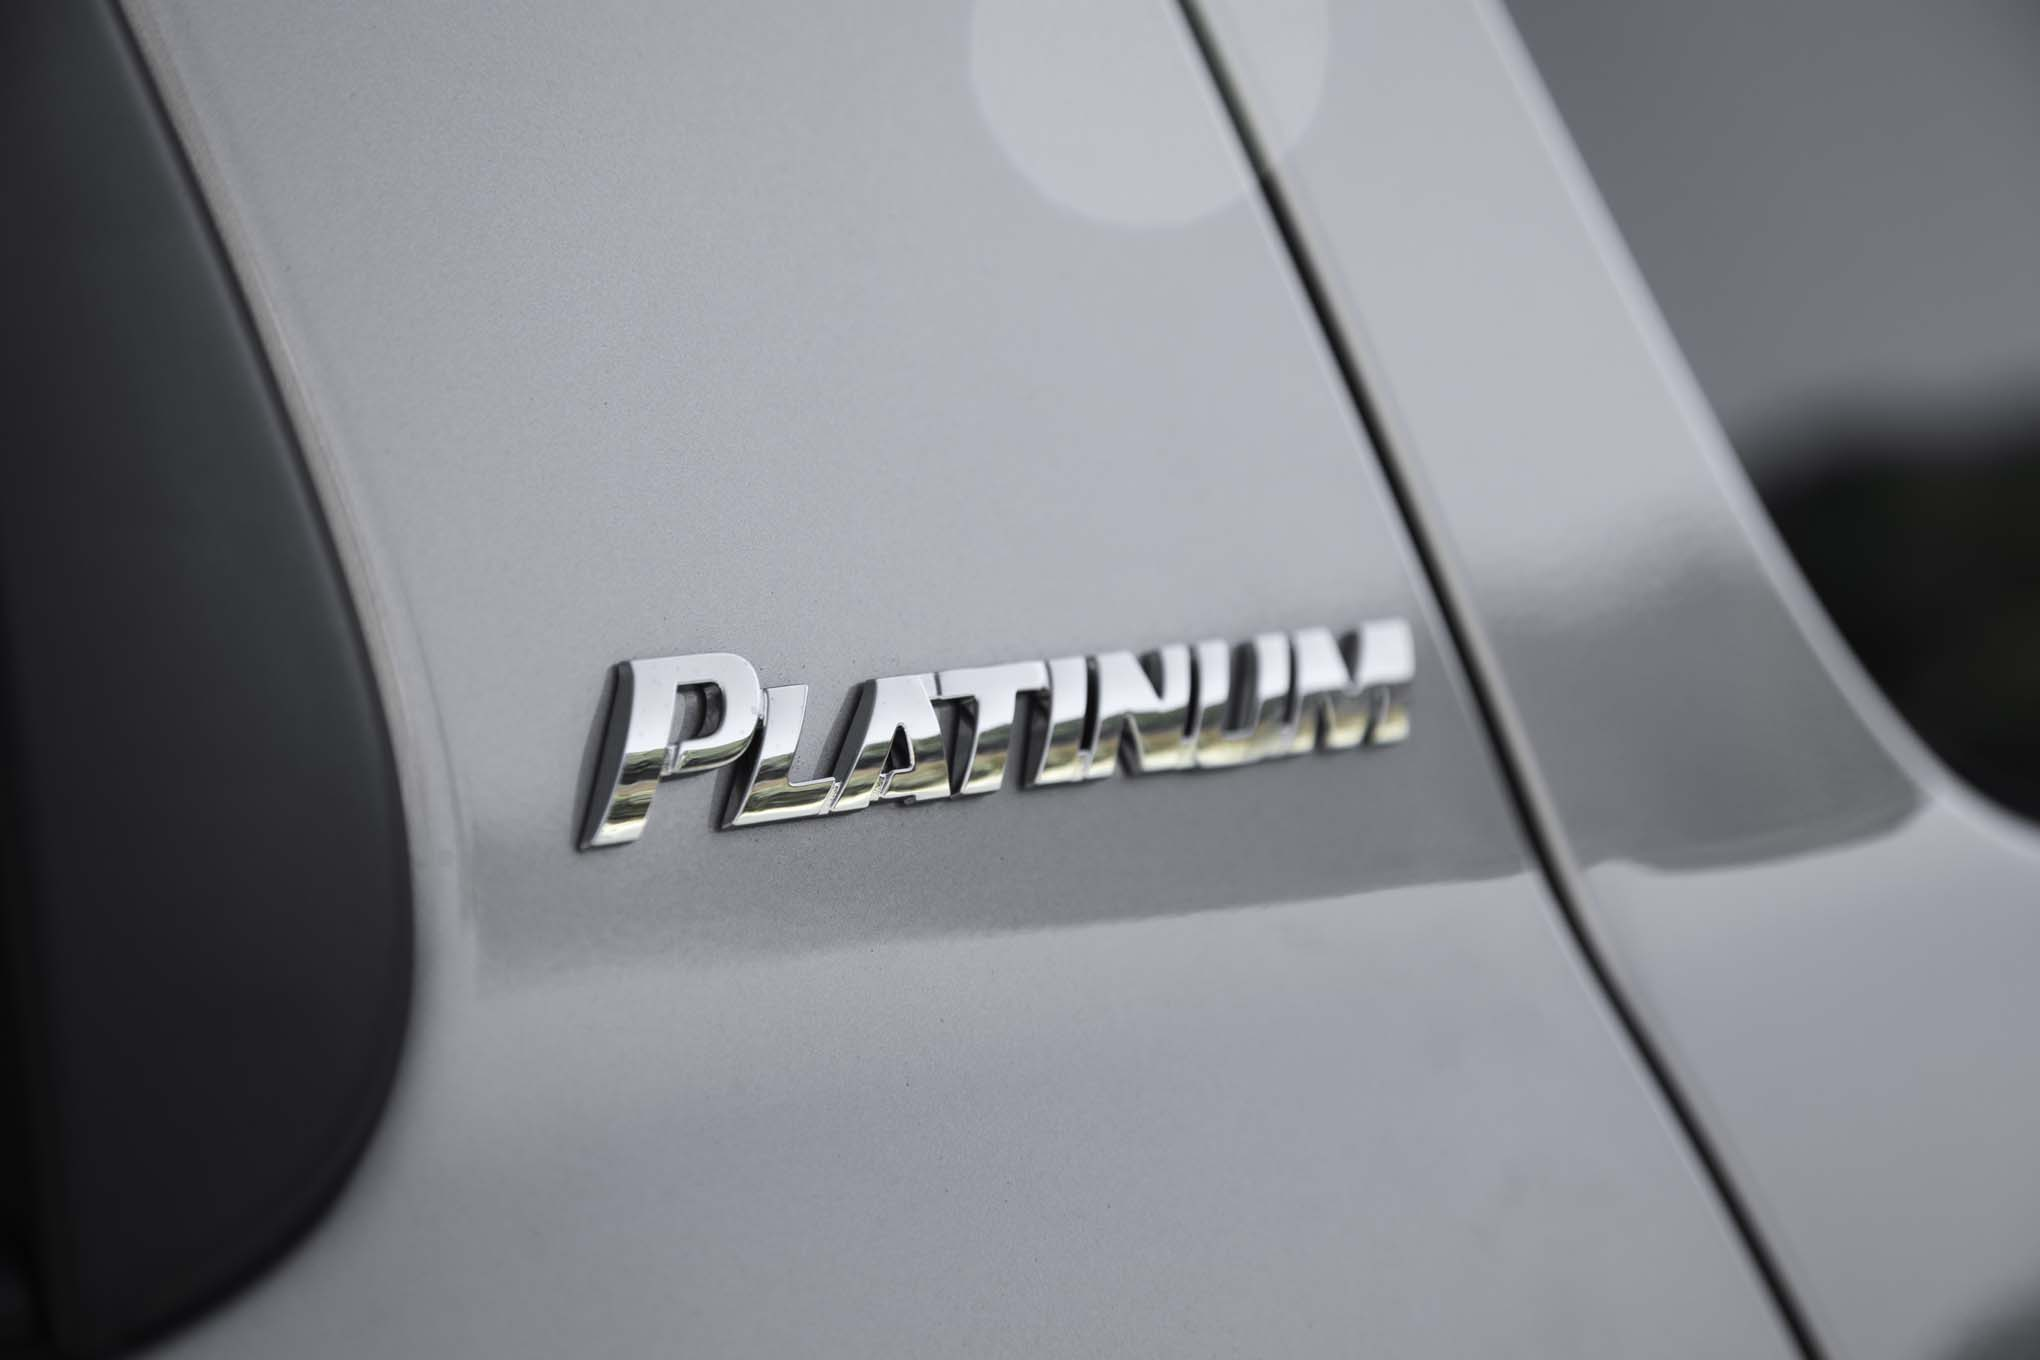 2017 Toyota Sequoia 4×4 Platinum Exterior View Rear Emblem (Photo 9 of 26)